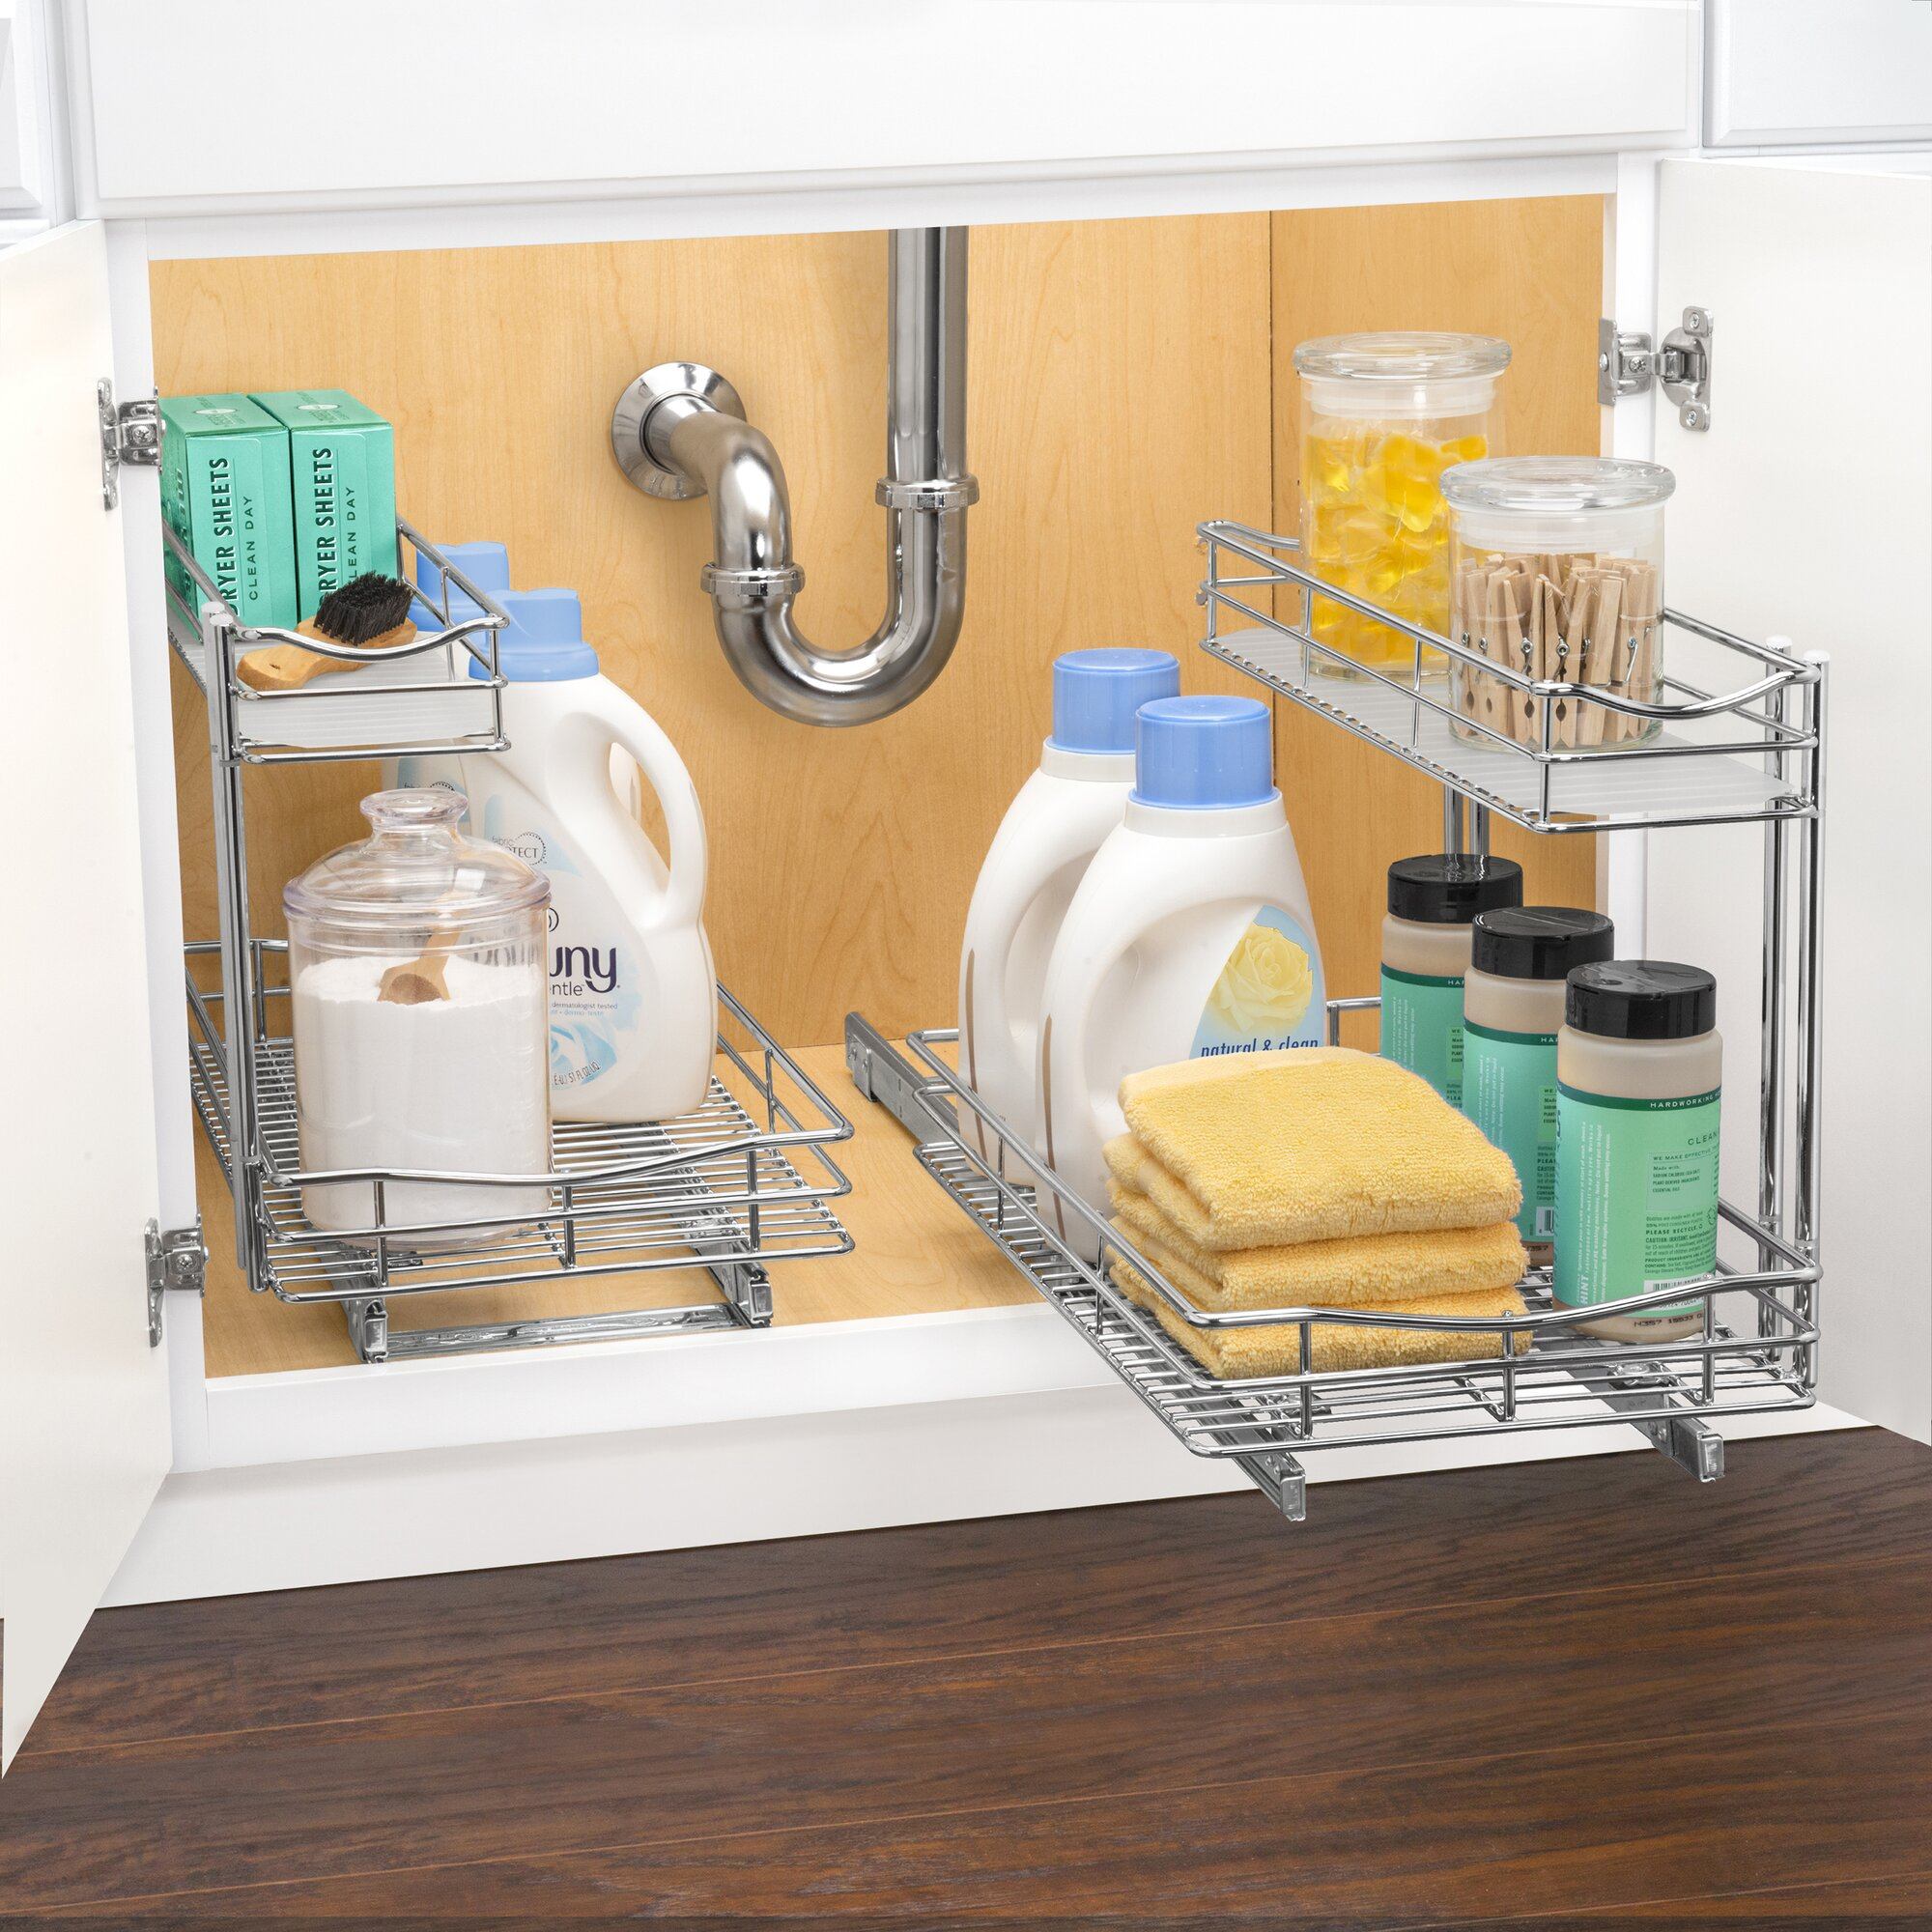 Lynk Roll Out Cabinet Organizer: Lynk Roll Out Under Sink Cabinet Organizer